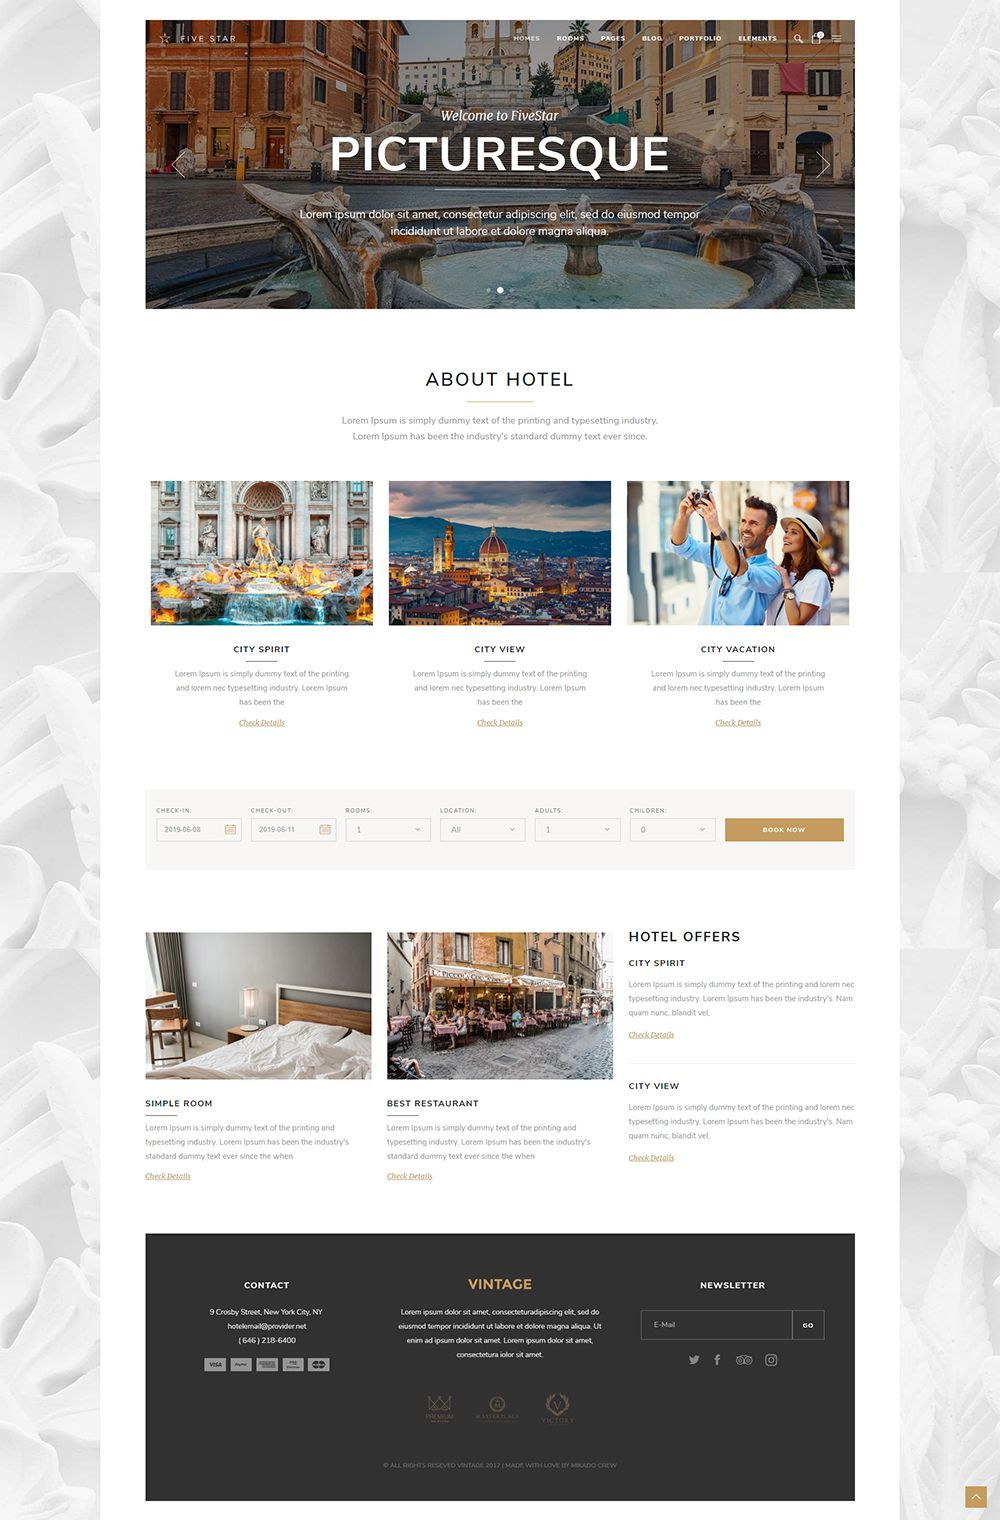 Having a booking functionality on a travel website is a must! Check out FiveStar, a superb hotel booking WordPress theme. #webdesign #design #layout #template #uxdesign #uidesign #travel #travelagency #responsive #wordpresslove #webdesigninspiration #responsivedesign #webdesigntrends #booking #tours #holidays #vacation #touroperator